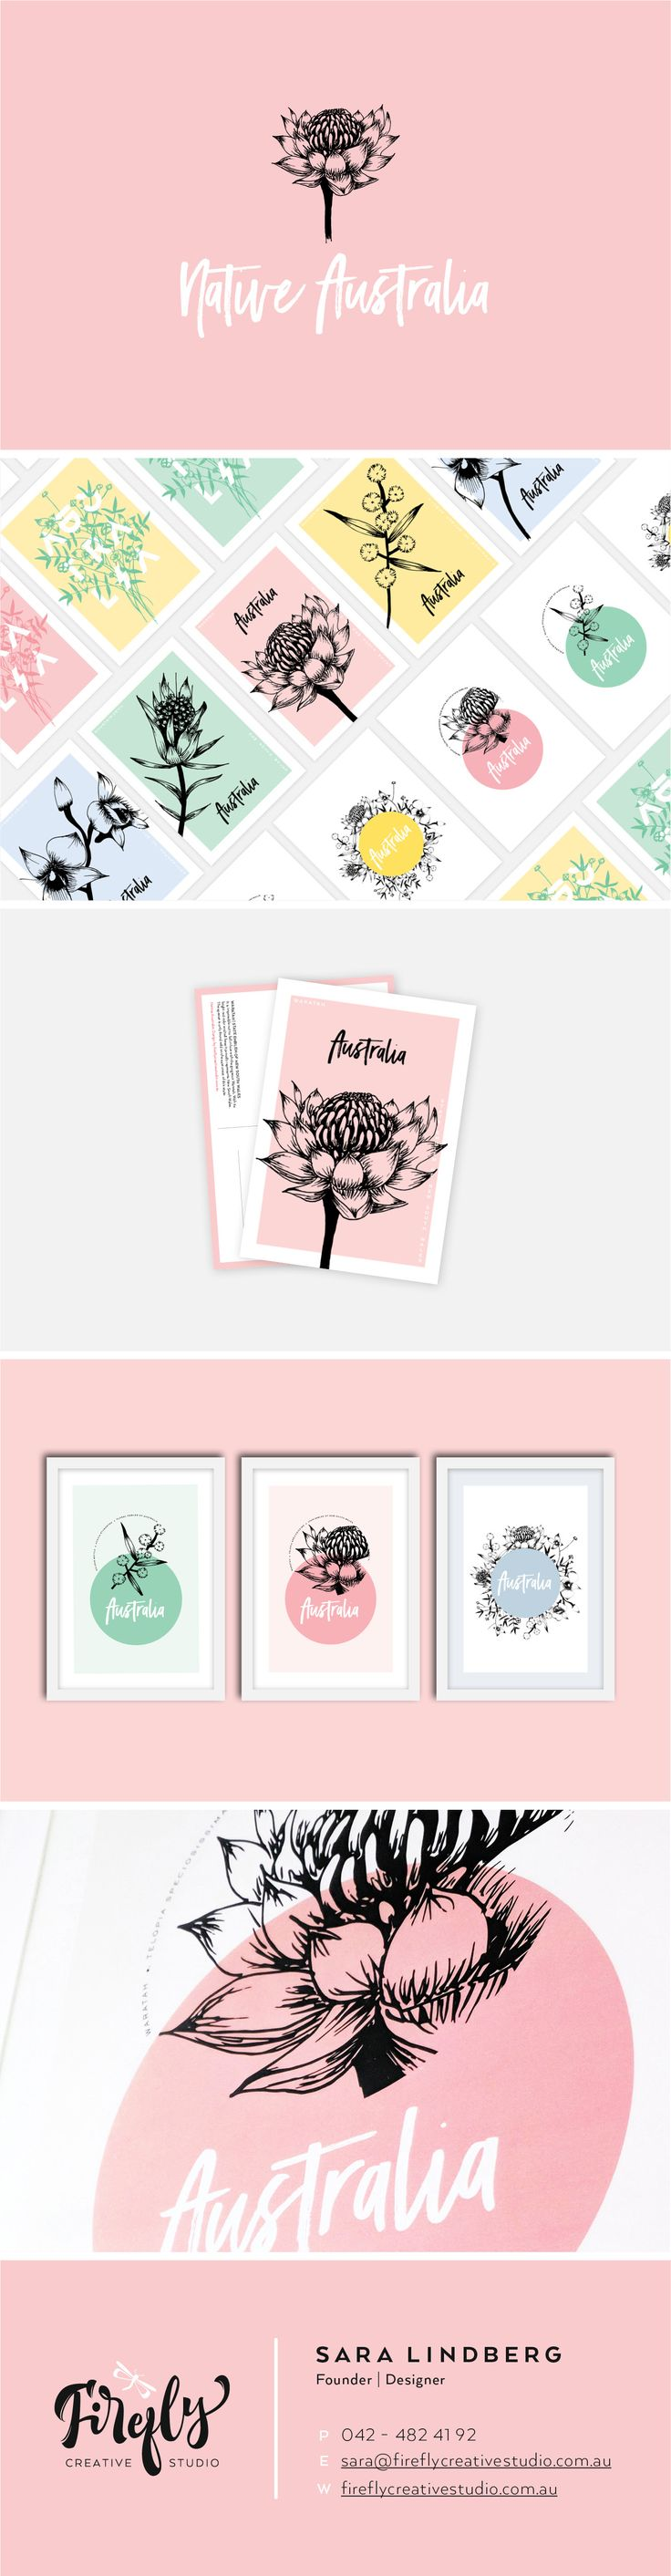 Native Australia Art by Firefly Creative Studio  Art Prints, Posters, postcards and more with native Australian flowers.